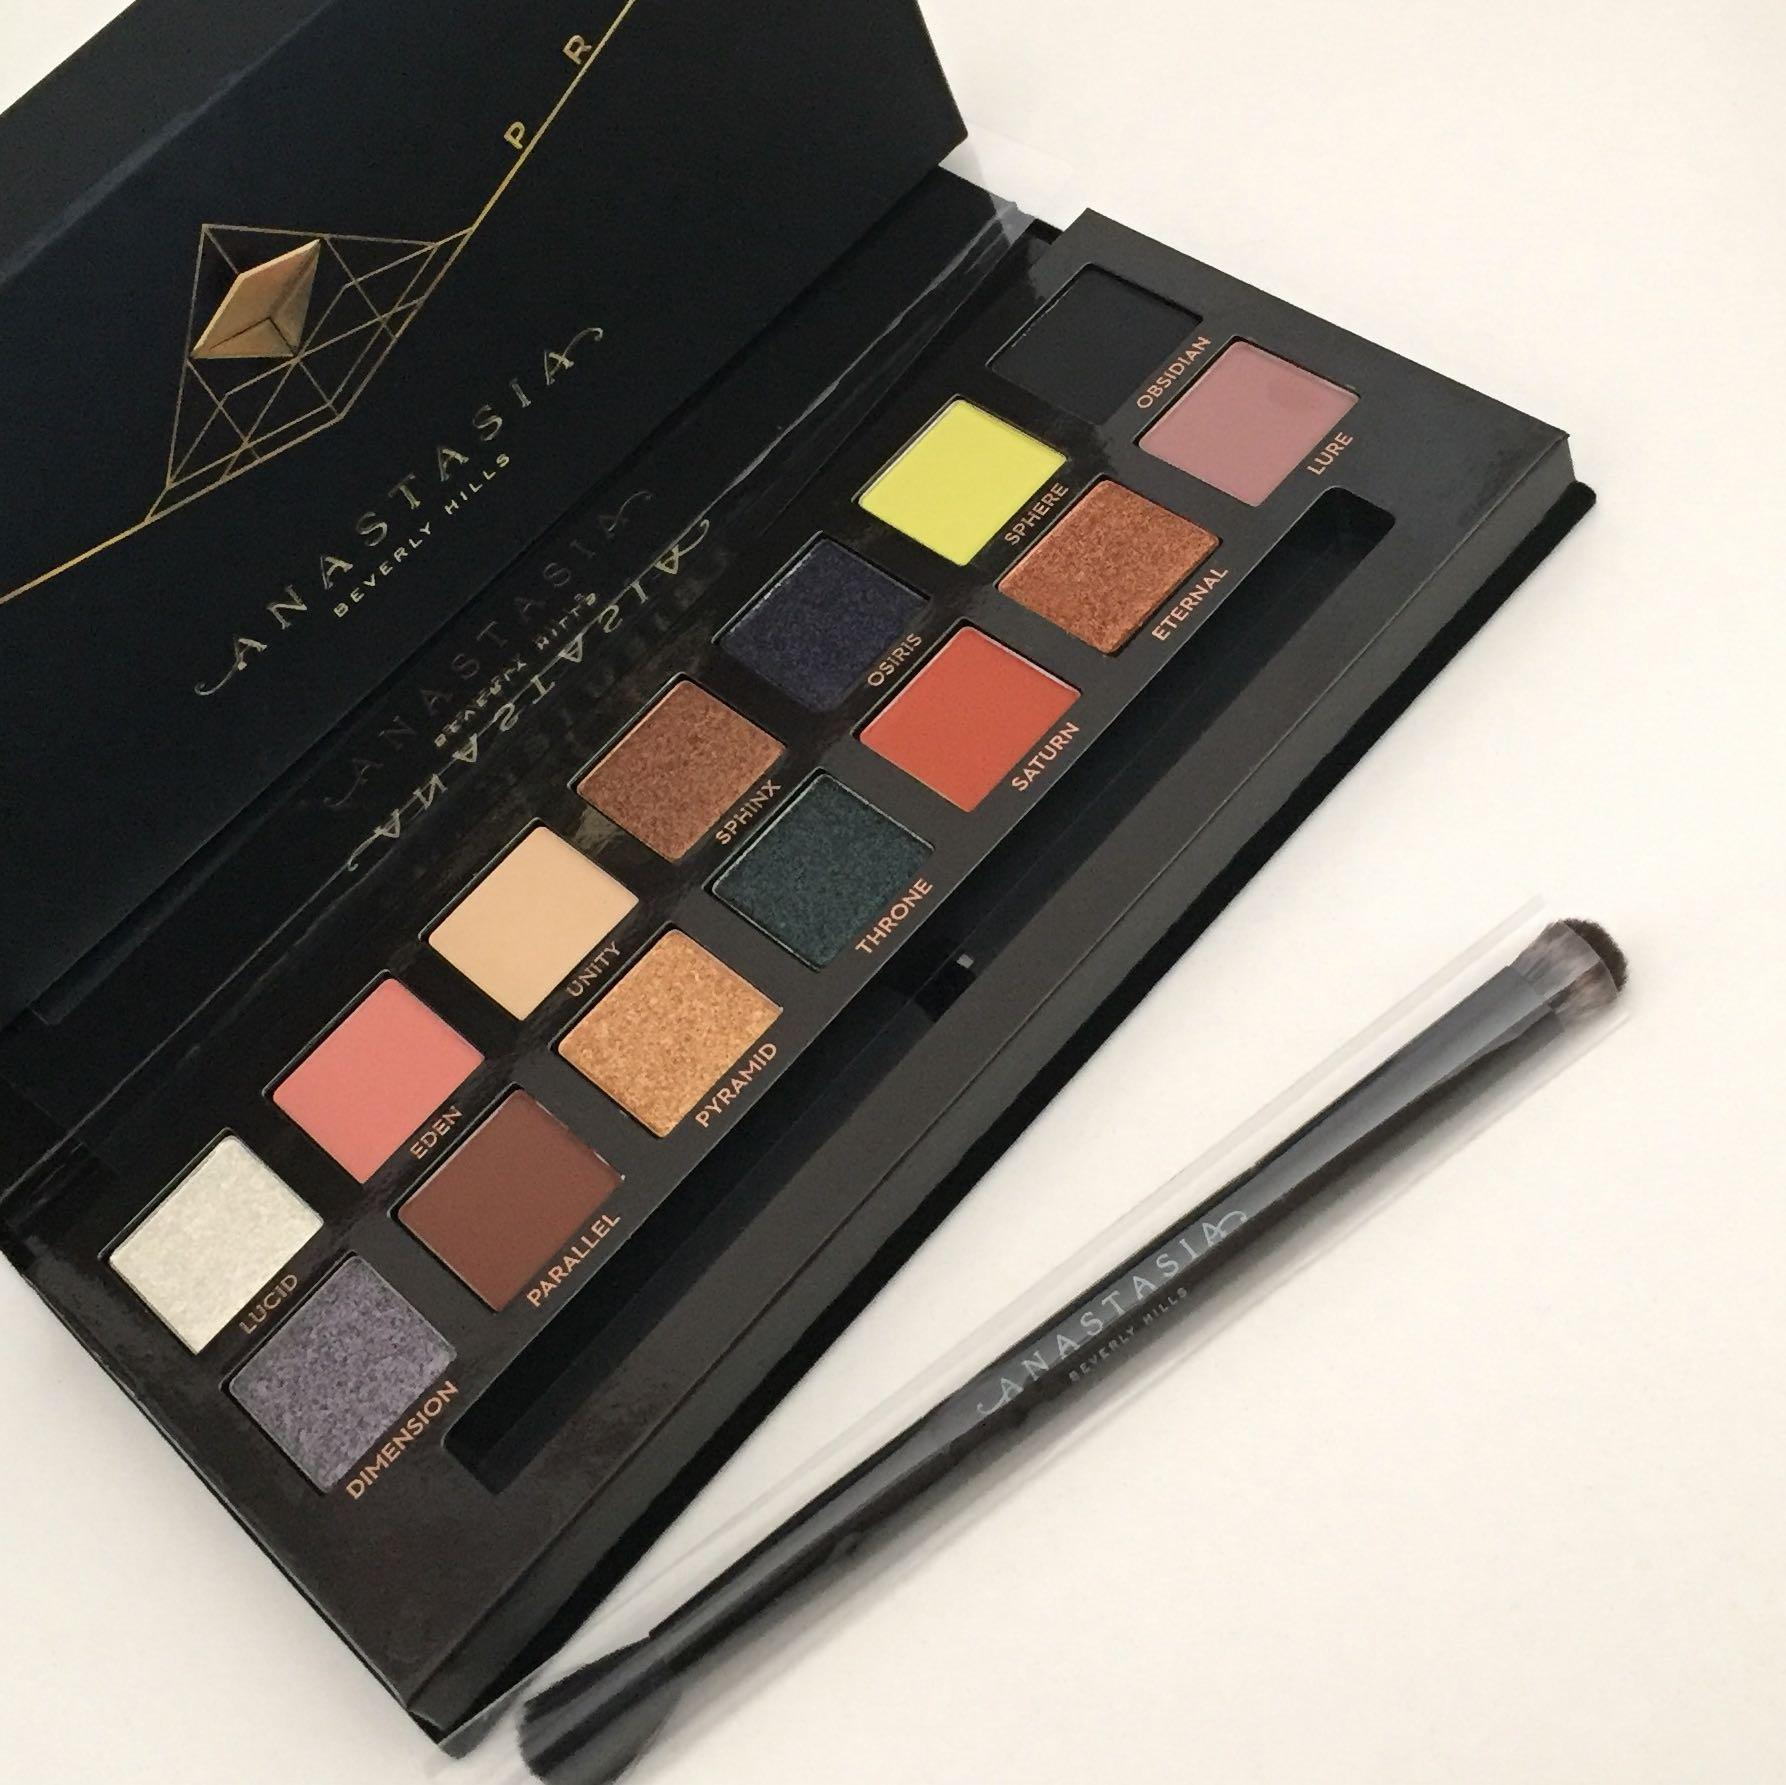 LMTED EDITION & B/NEW ANASTASIA PRISM LUXE EYESHPALETTE